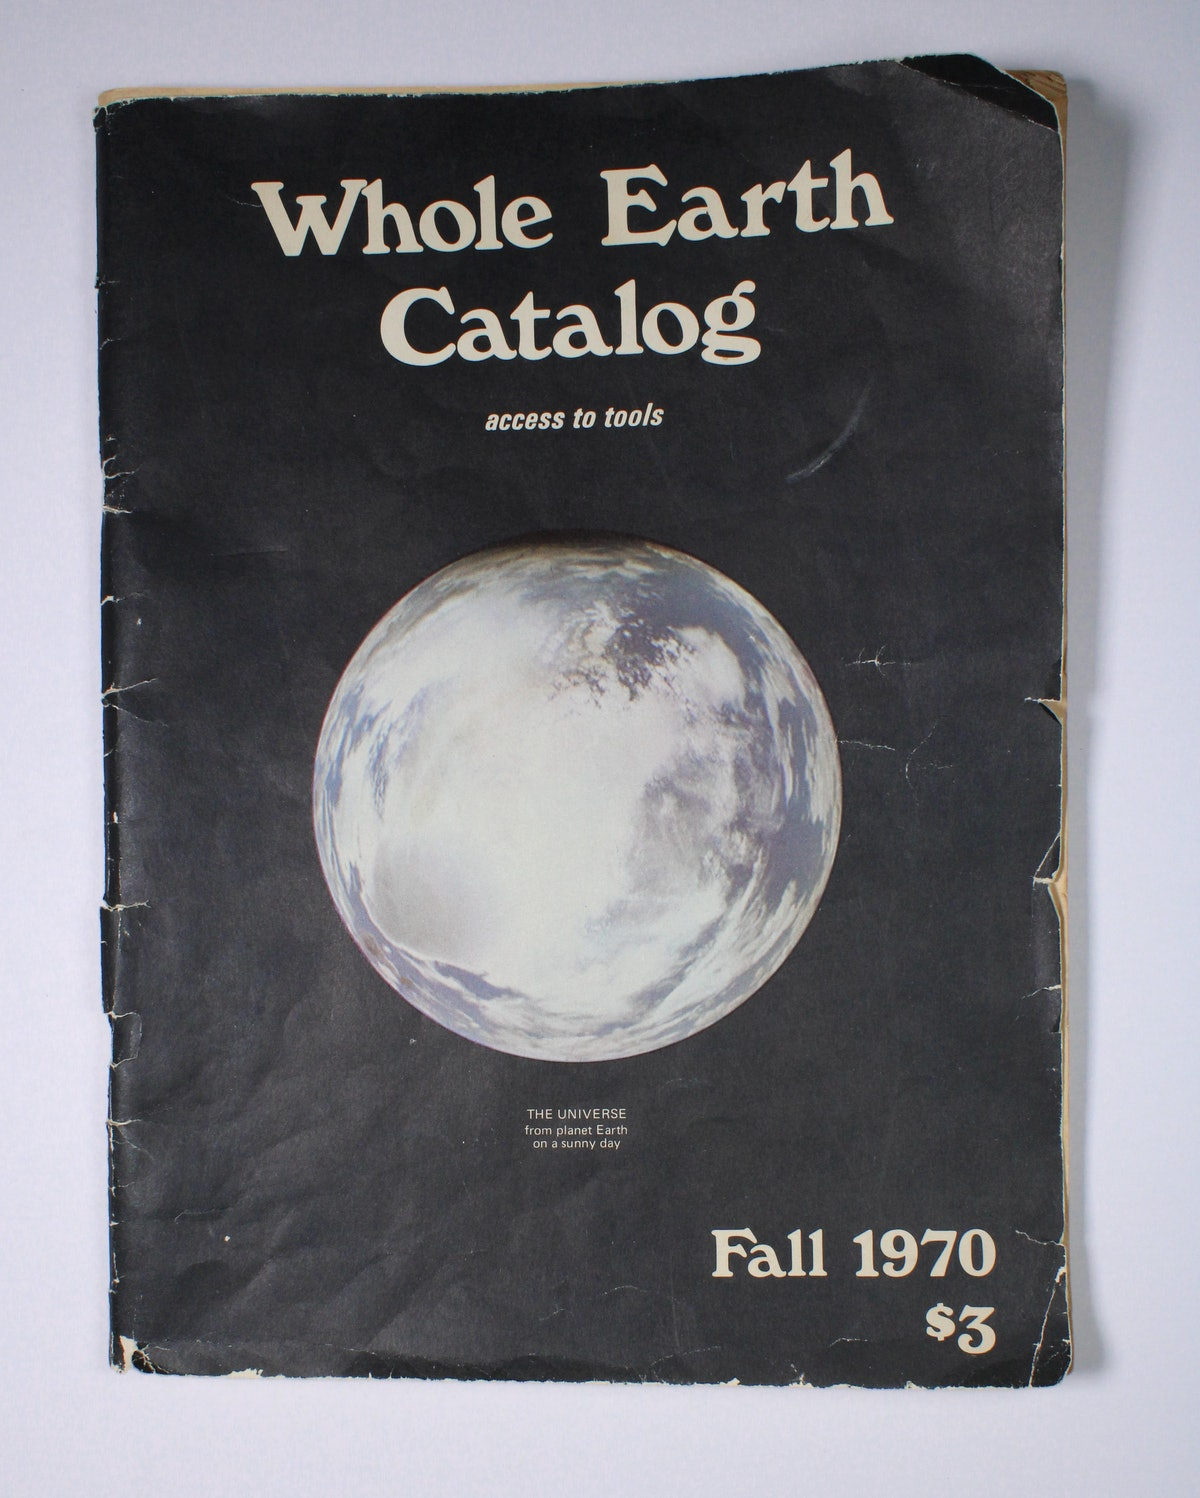 Whole Earth Catalog: access to tools